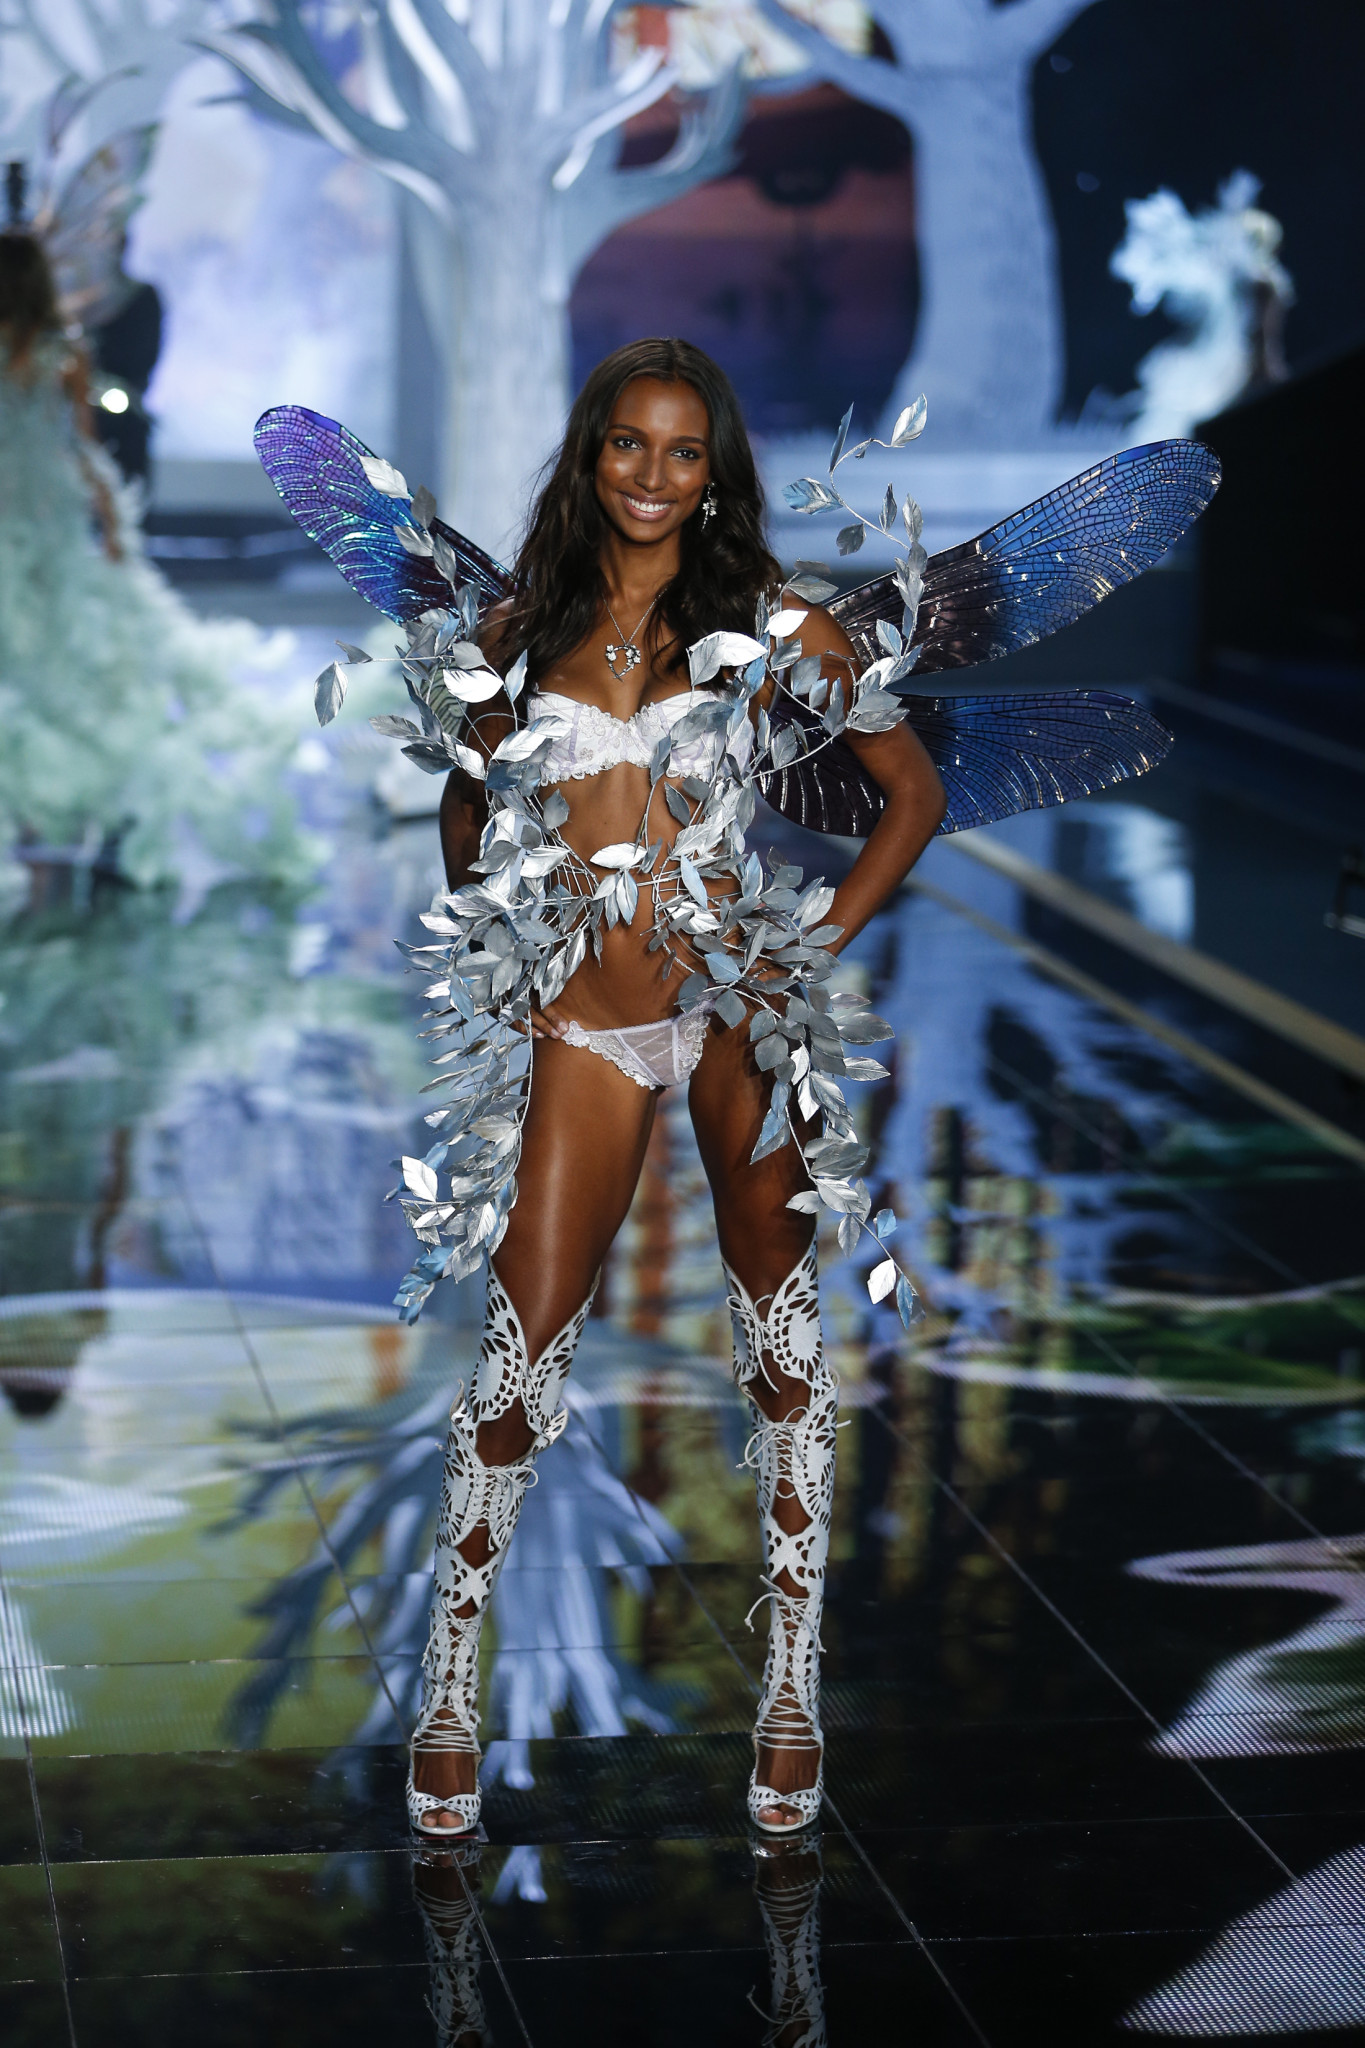 Jasmine Tookes walks the runway at the 2014 Victoria's Secret Fashion Show in London on December 2nd, 2014